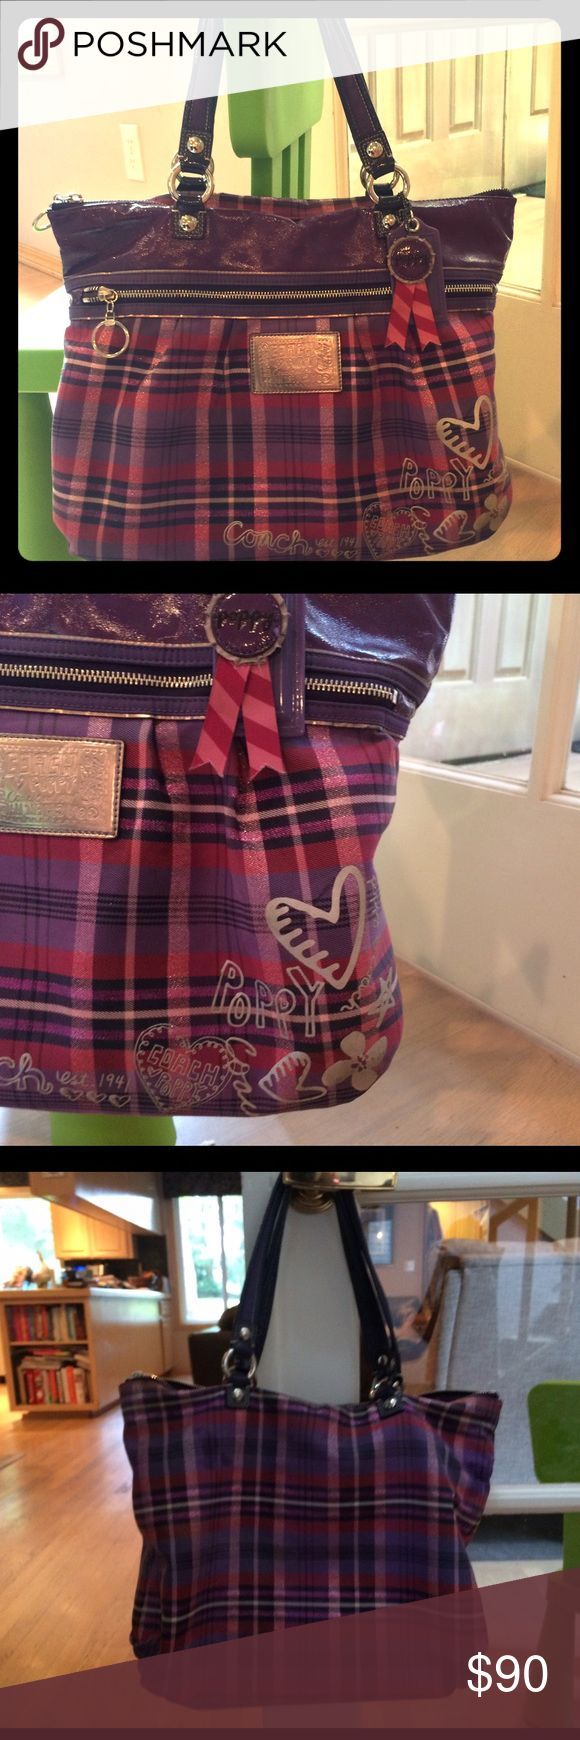 coach coach outlet 24le  Coach Poppy Tartan Glam Tote